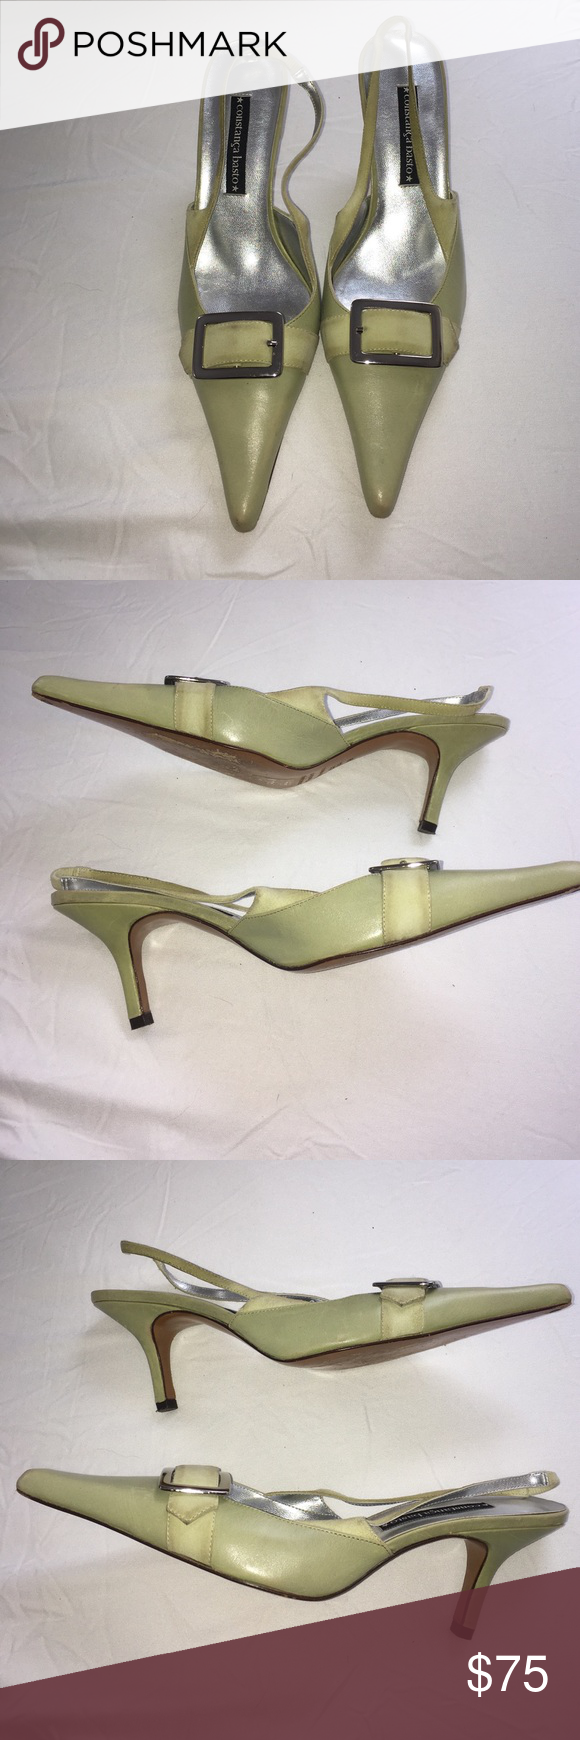 """Constança Basto mint leather heels Constança Basto mint leather heels. Suede detail, ankle strap, buckle accent, and pointy toe. 3"""" heel. Made in 🇧🇷 pre-loved condition with some wear to leather. Constança Basto Shoes Heels"""